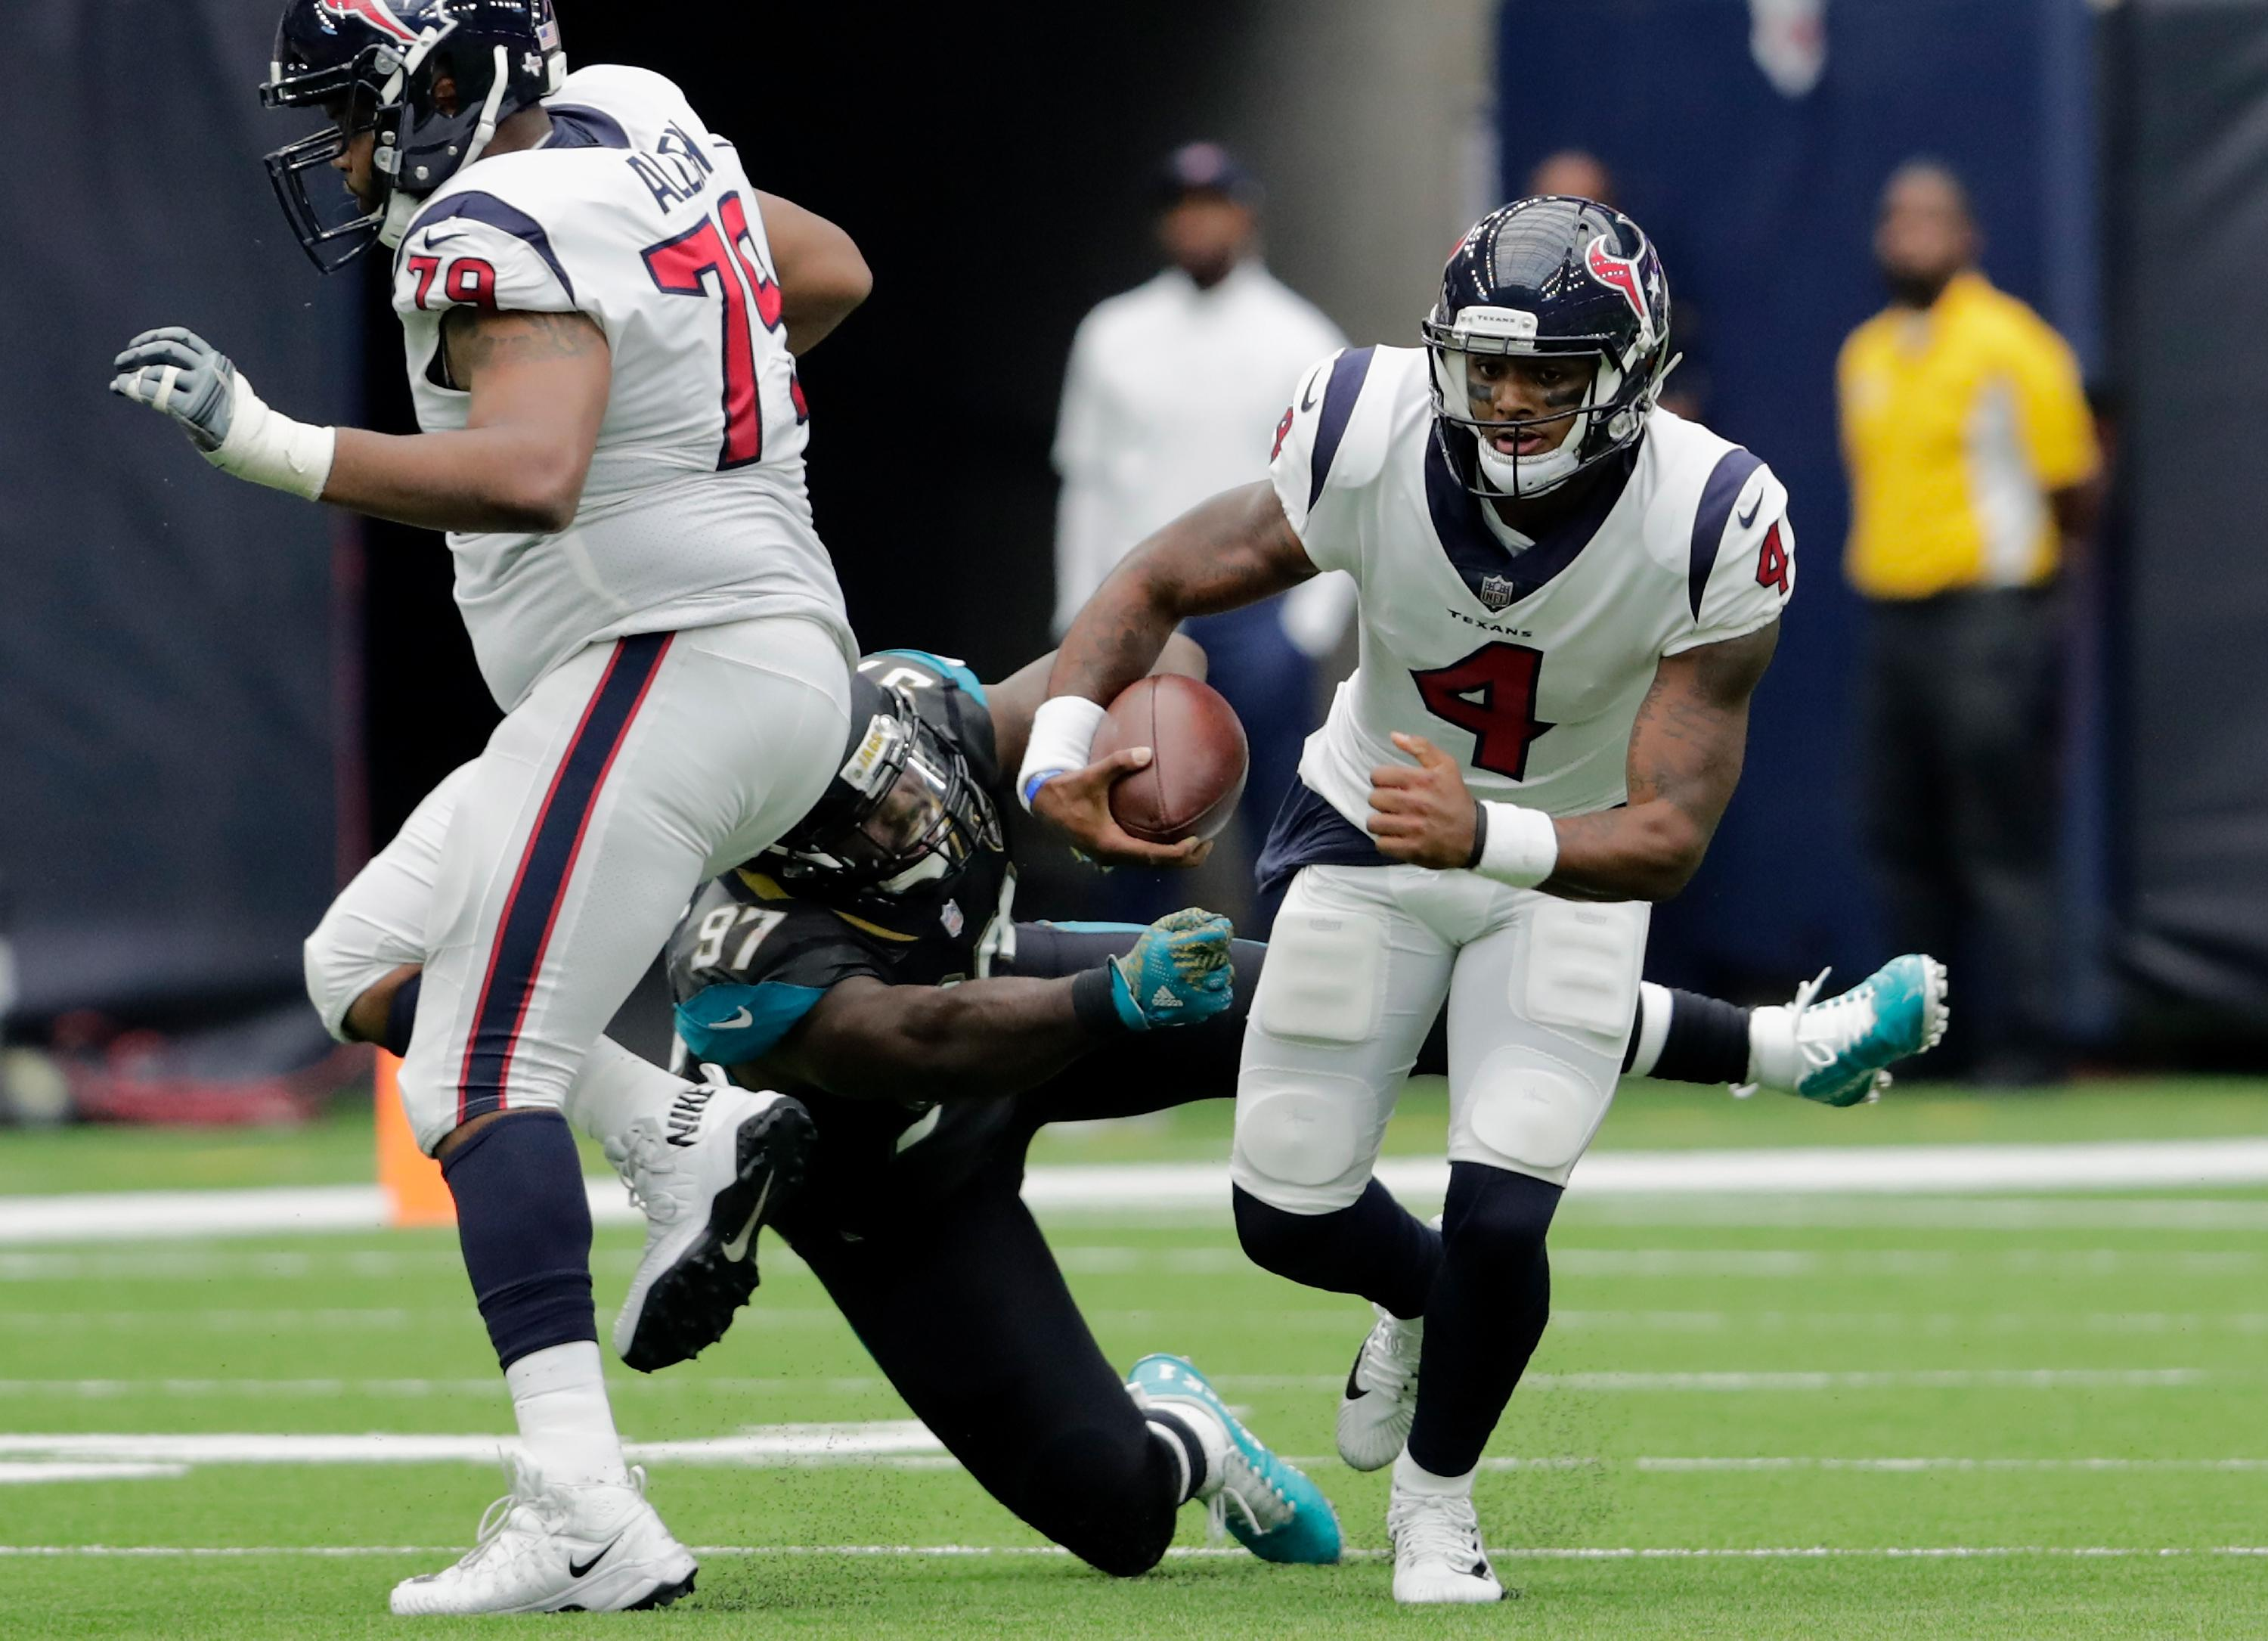 With O-line struggling, Deshaun Watson might be Texans' answer at QB